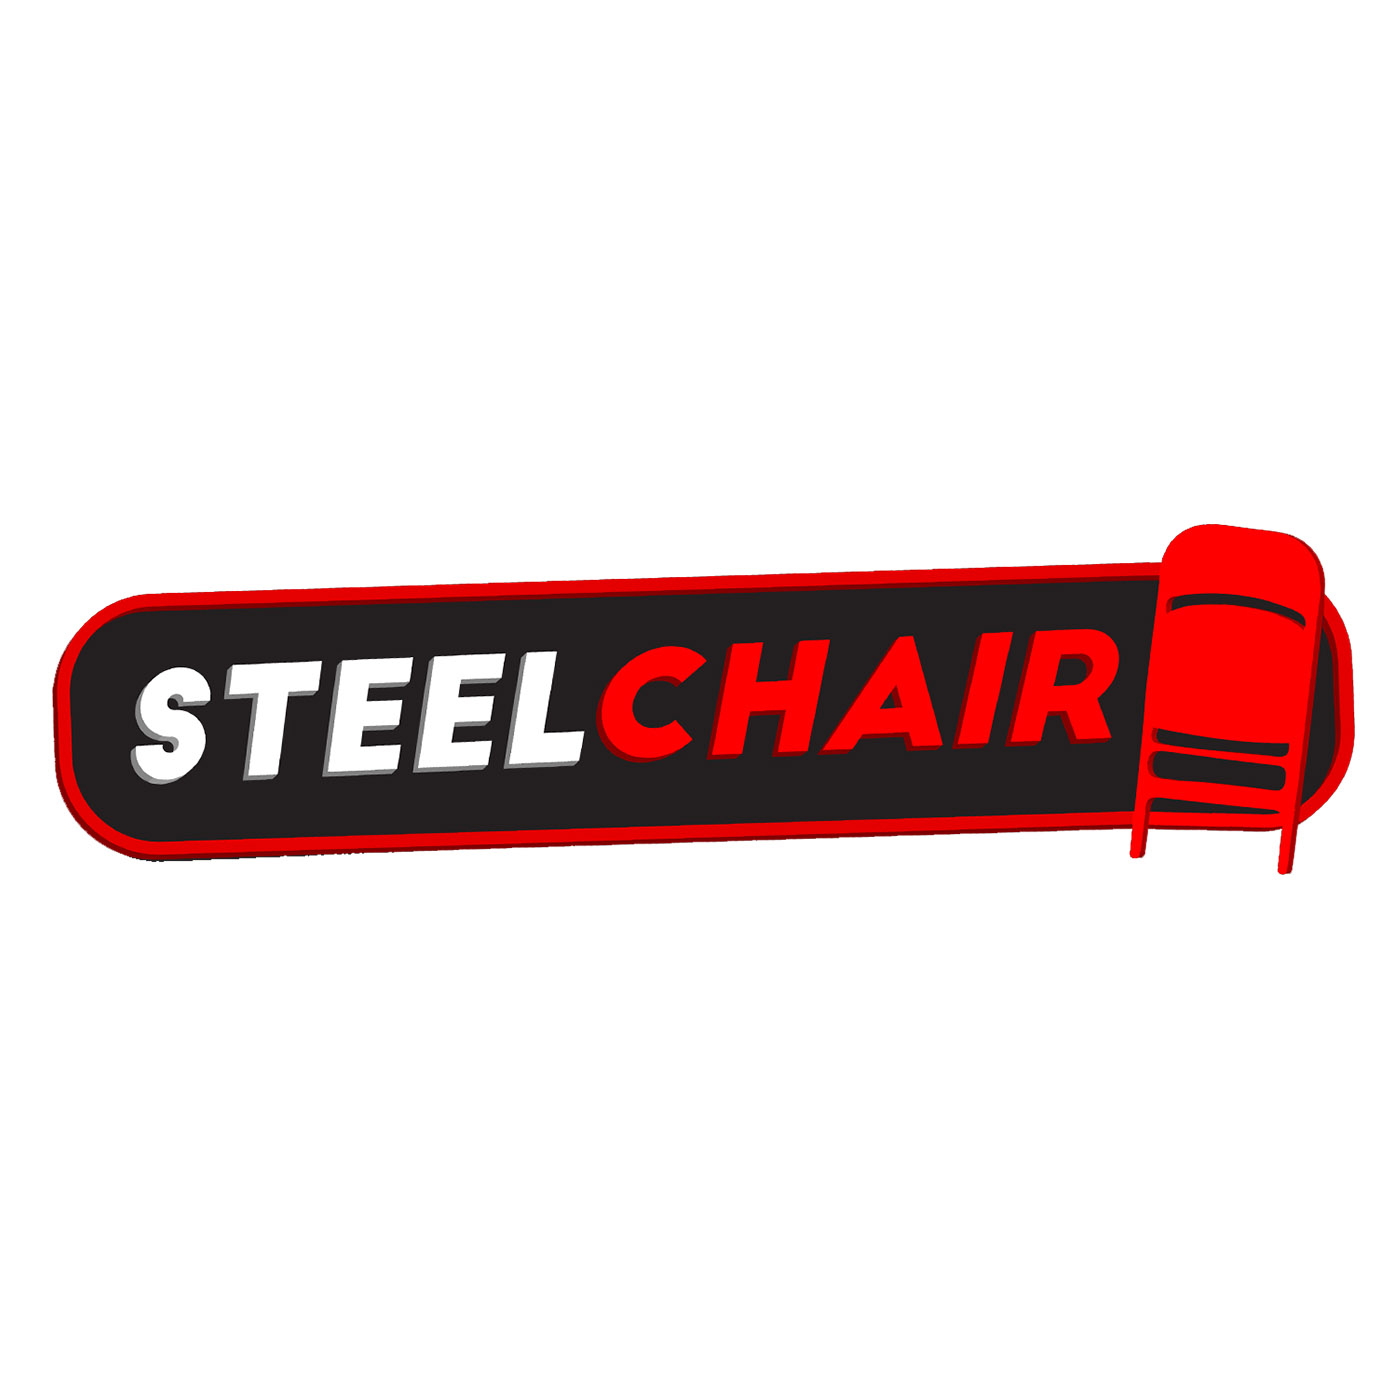 steel chair in wrestling beach chairs backpack steelchair magazine by vulturehound